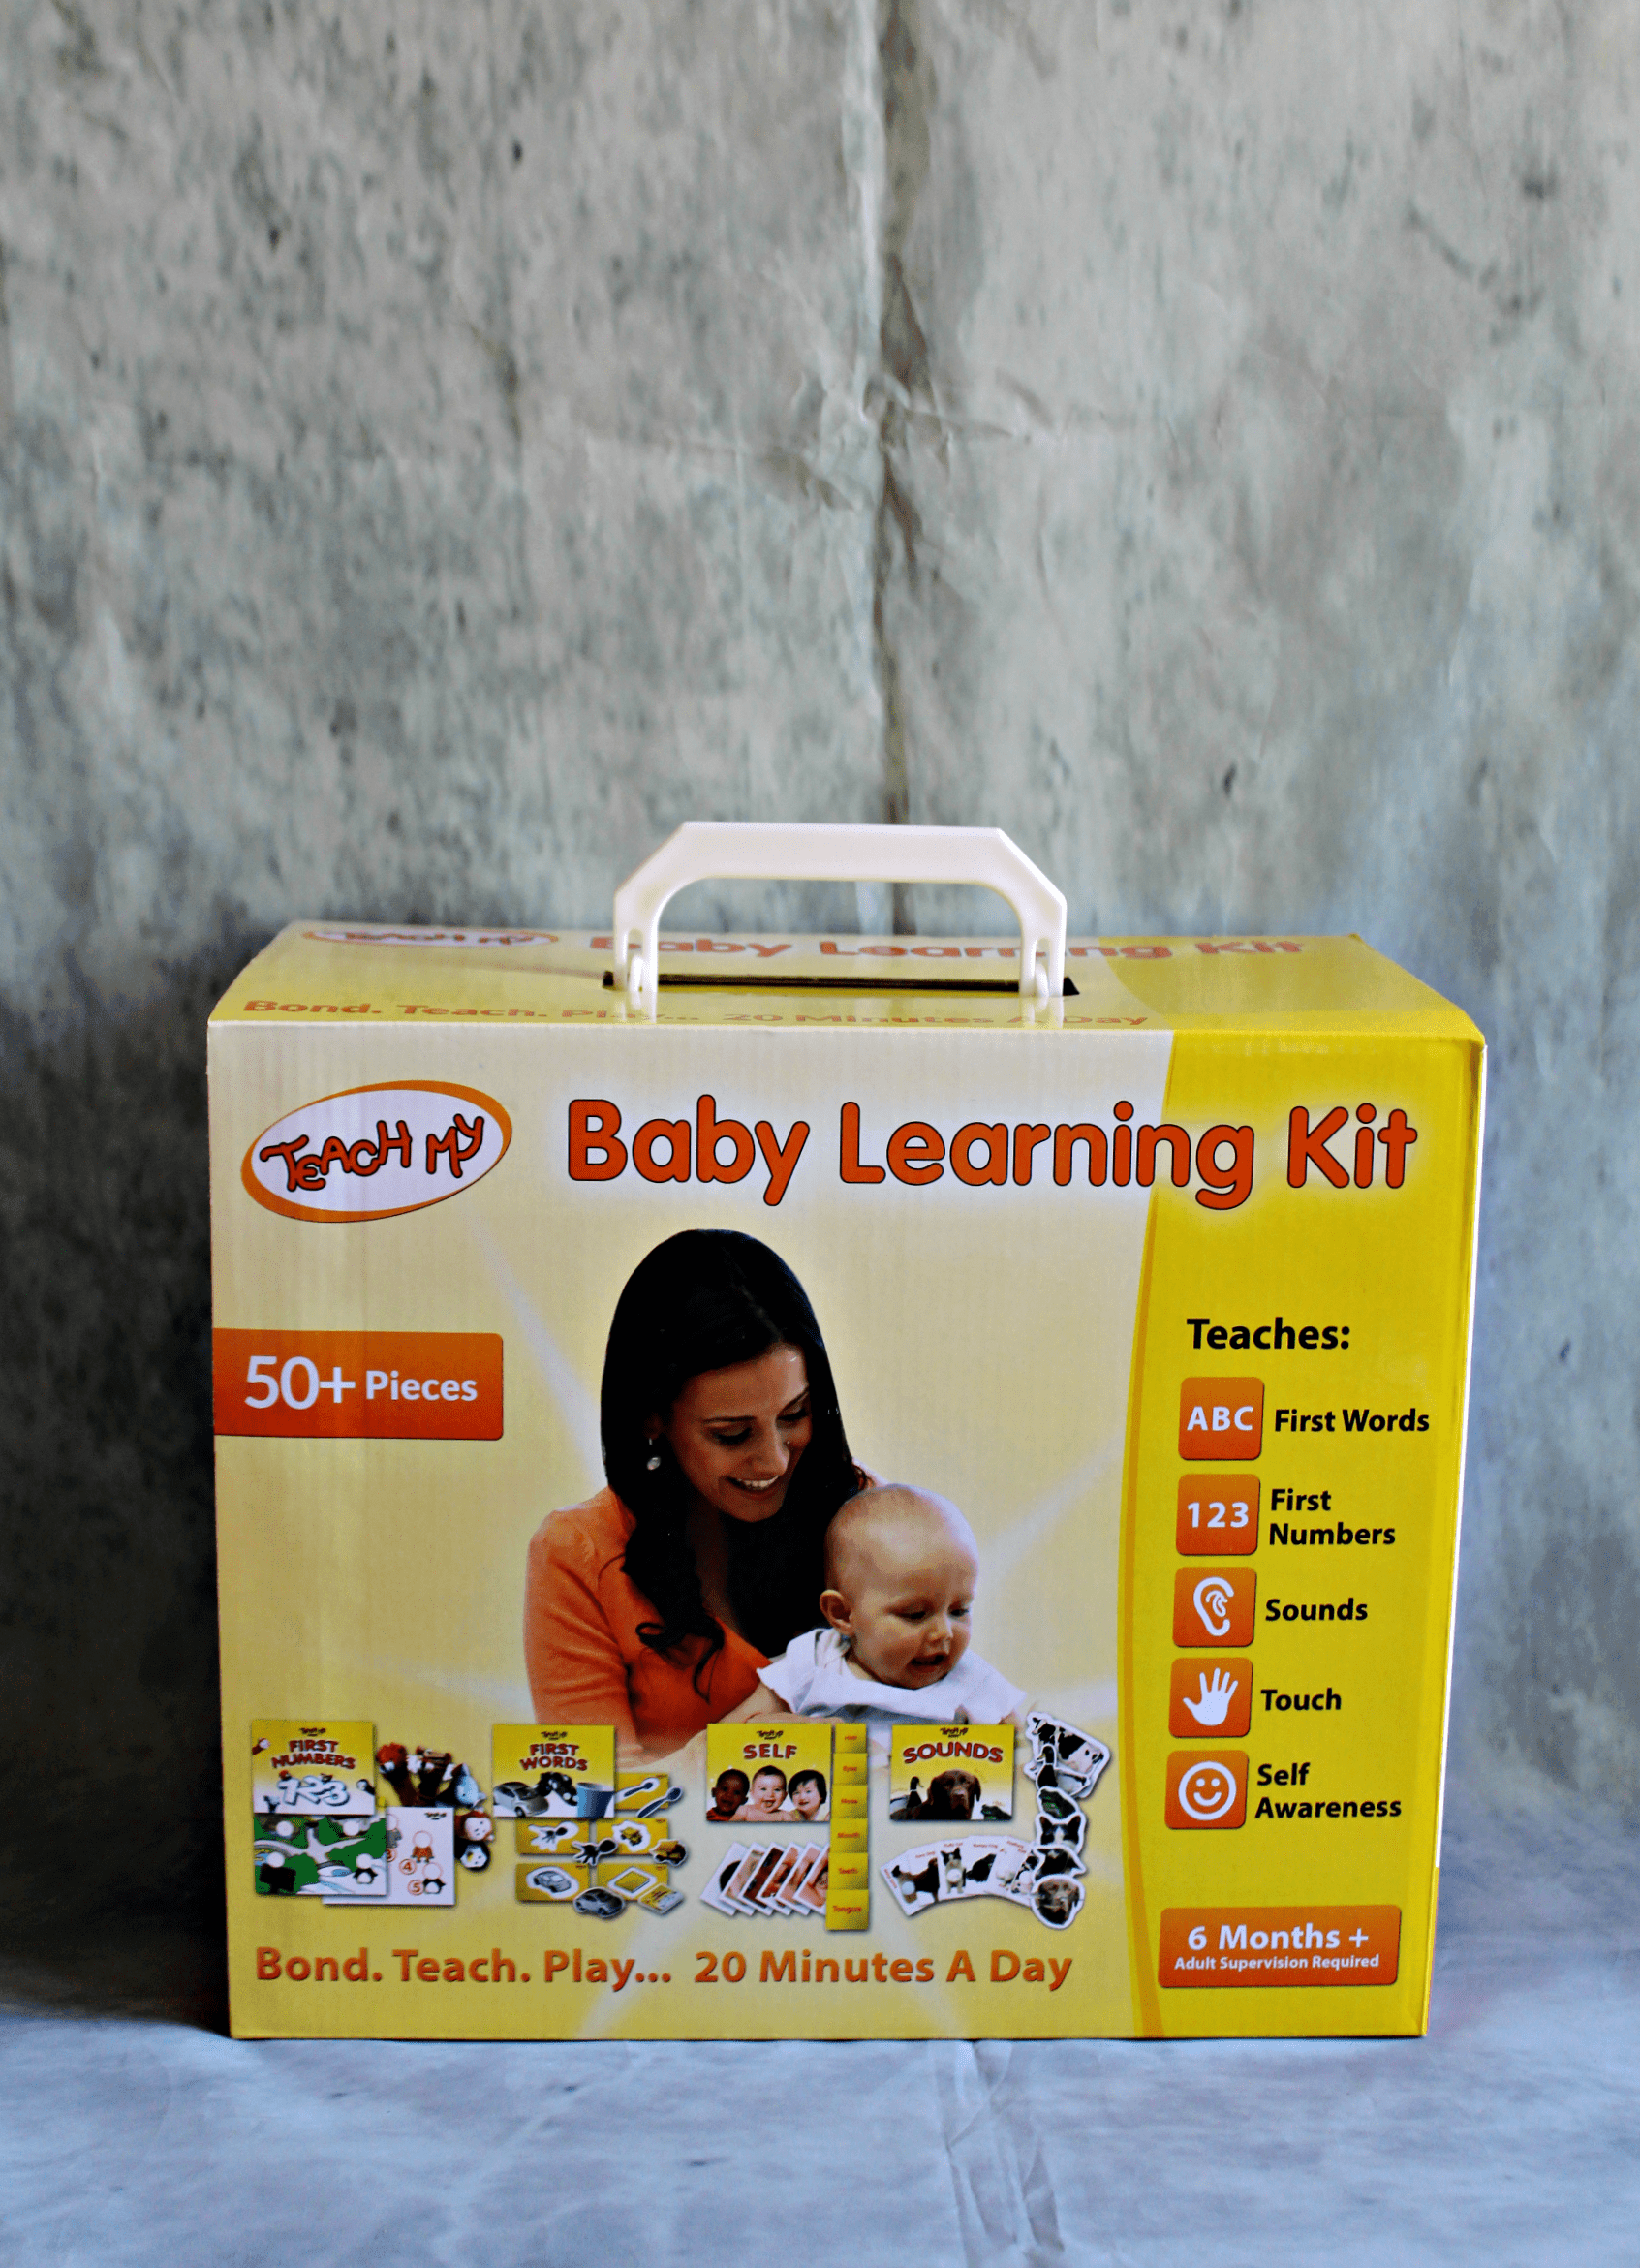 Baby Learning Kit from Teach My